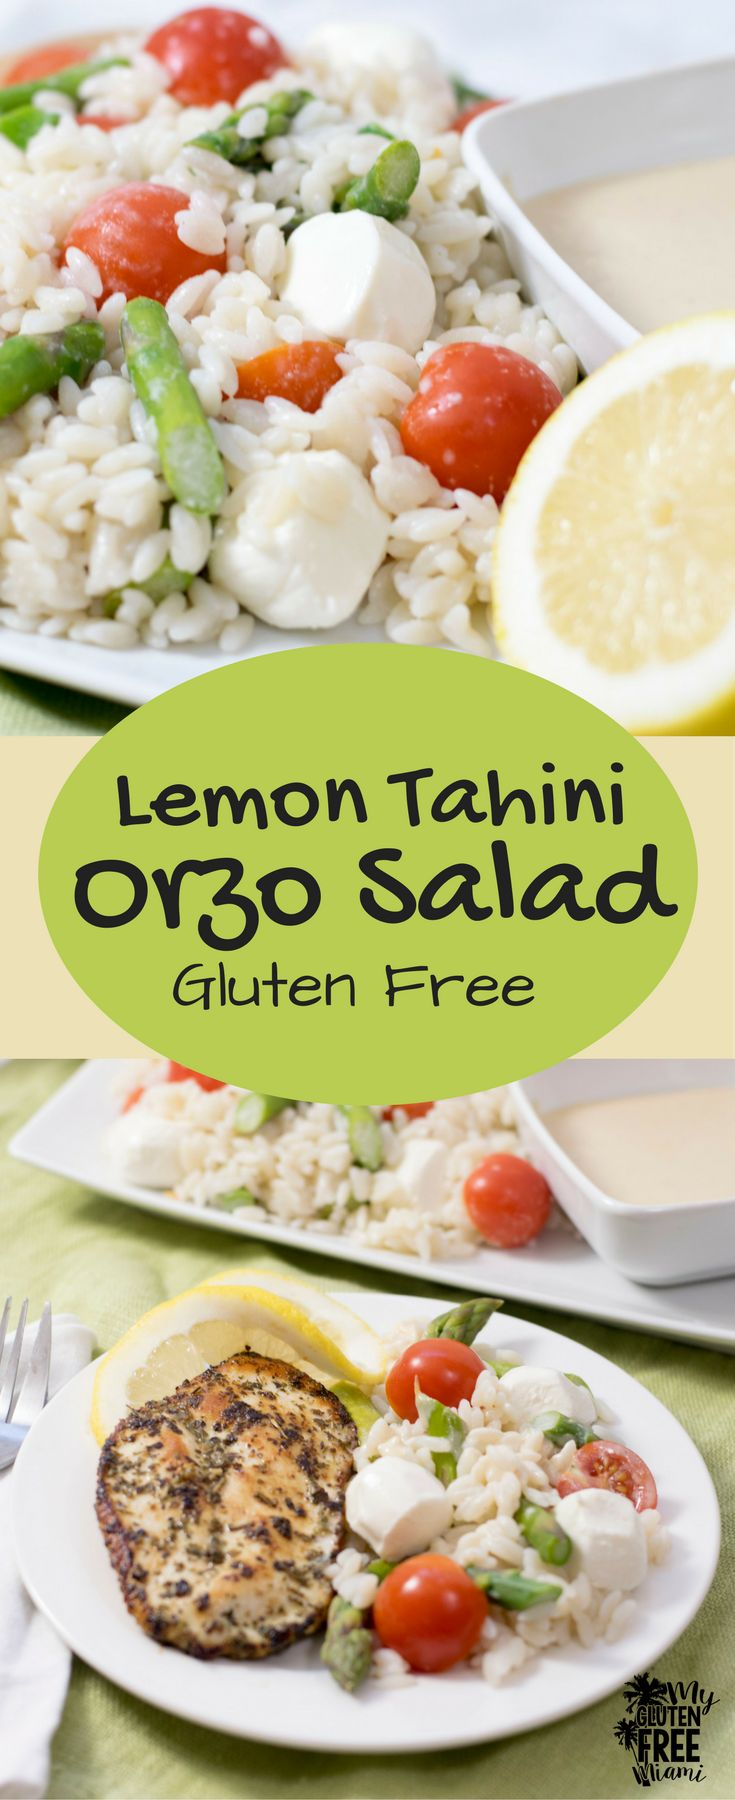 With a tangy Lemon Tahini dressing, this Gluten Free Orzo Salad with fresh tomatoes, asparagus, and mozzarella is sure to please! via @GLUTENFREEMIAMI